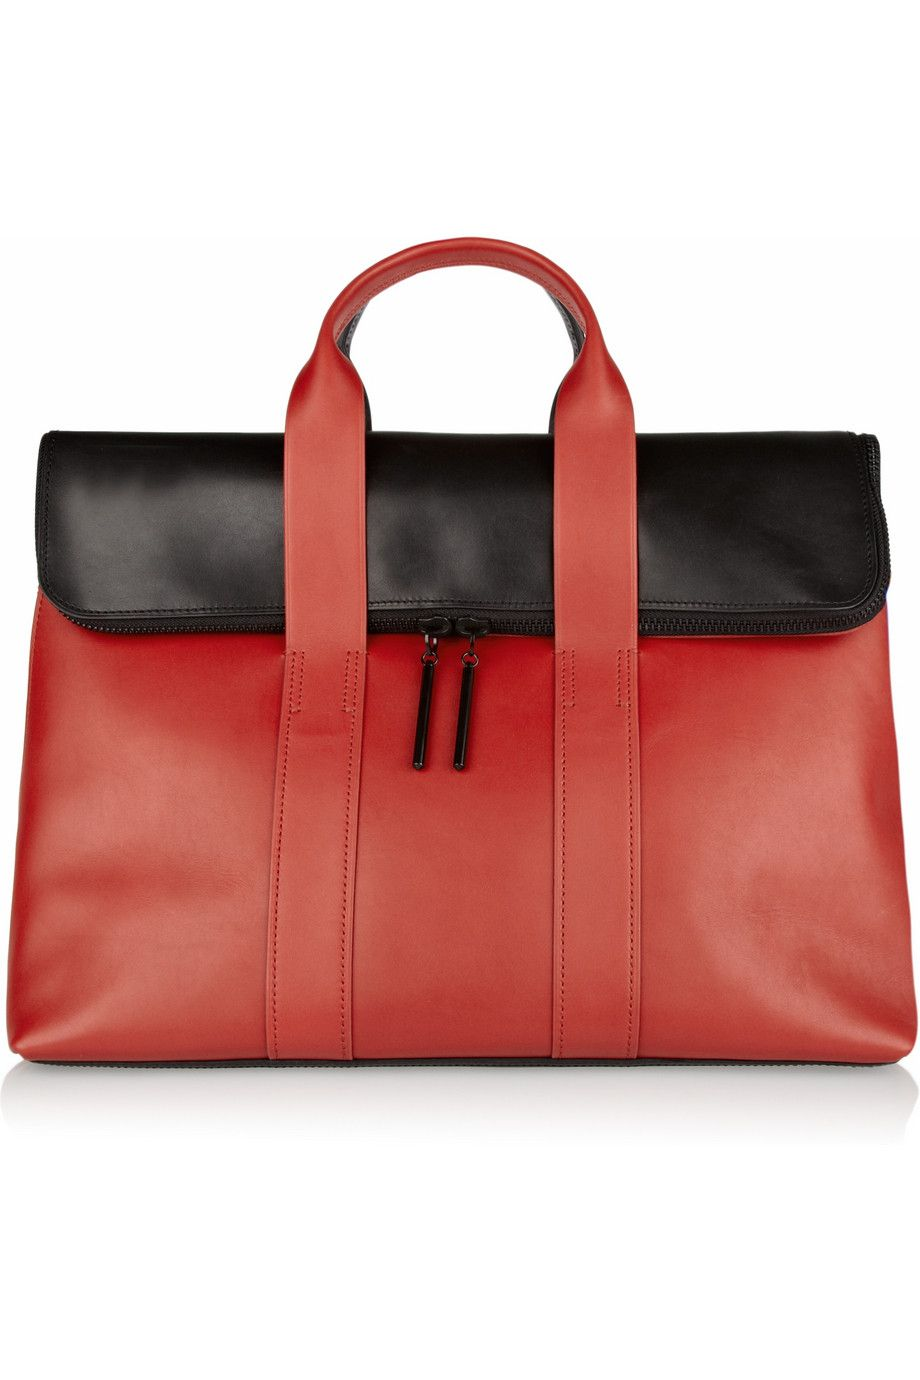 3.1 Phillip Lim - 31 Hour two-tone leather tote